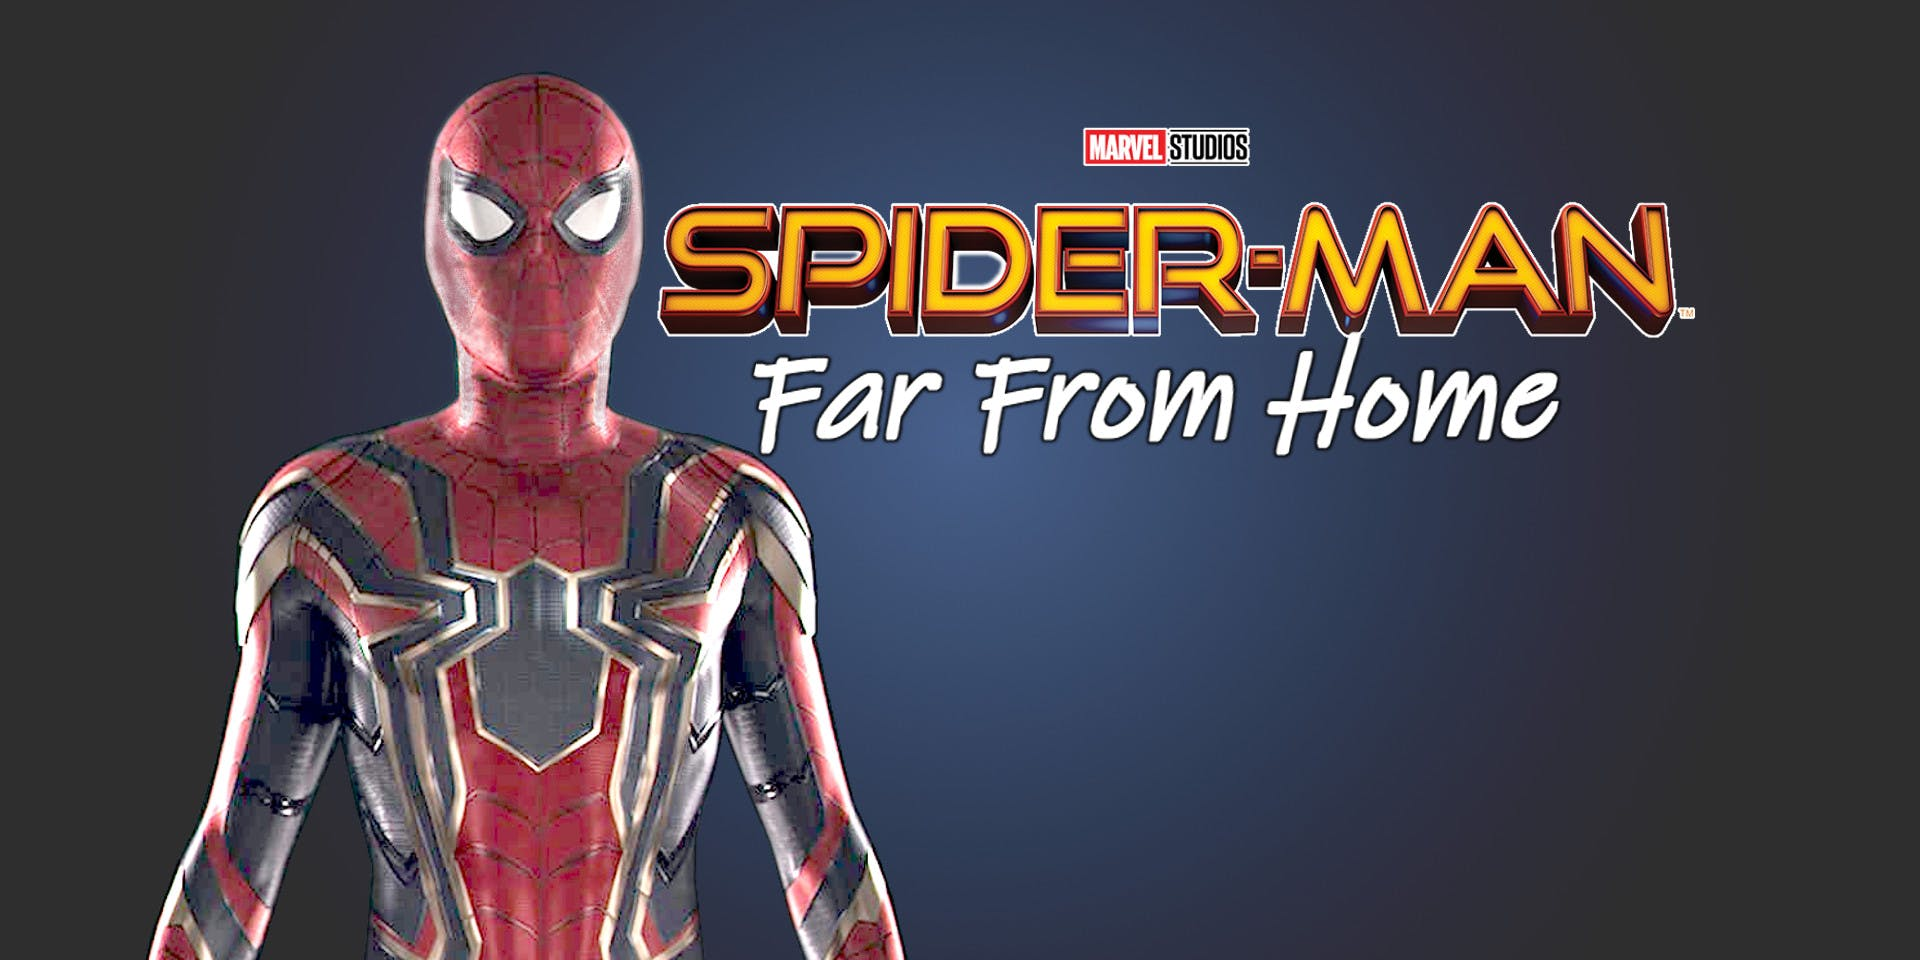 ¡Spoiler alert! Tom Holland revela el título de Spider-Man 2, ¿accidentalmente?